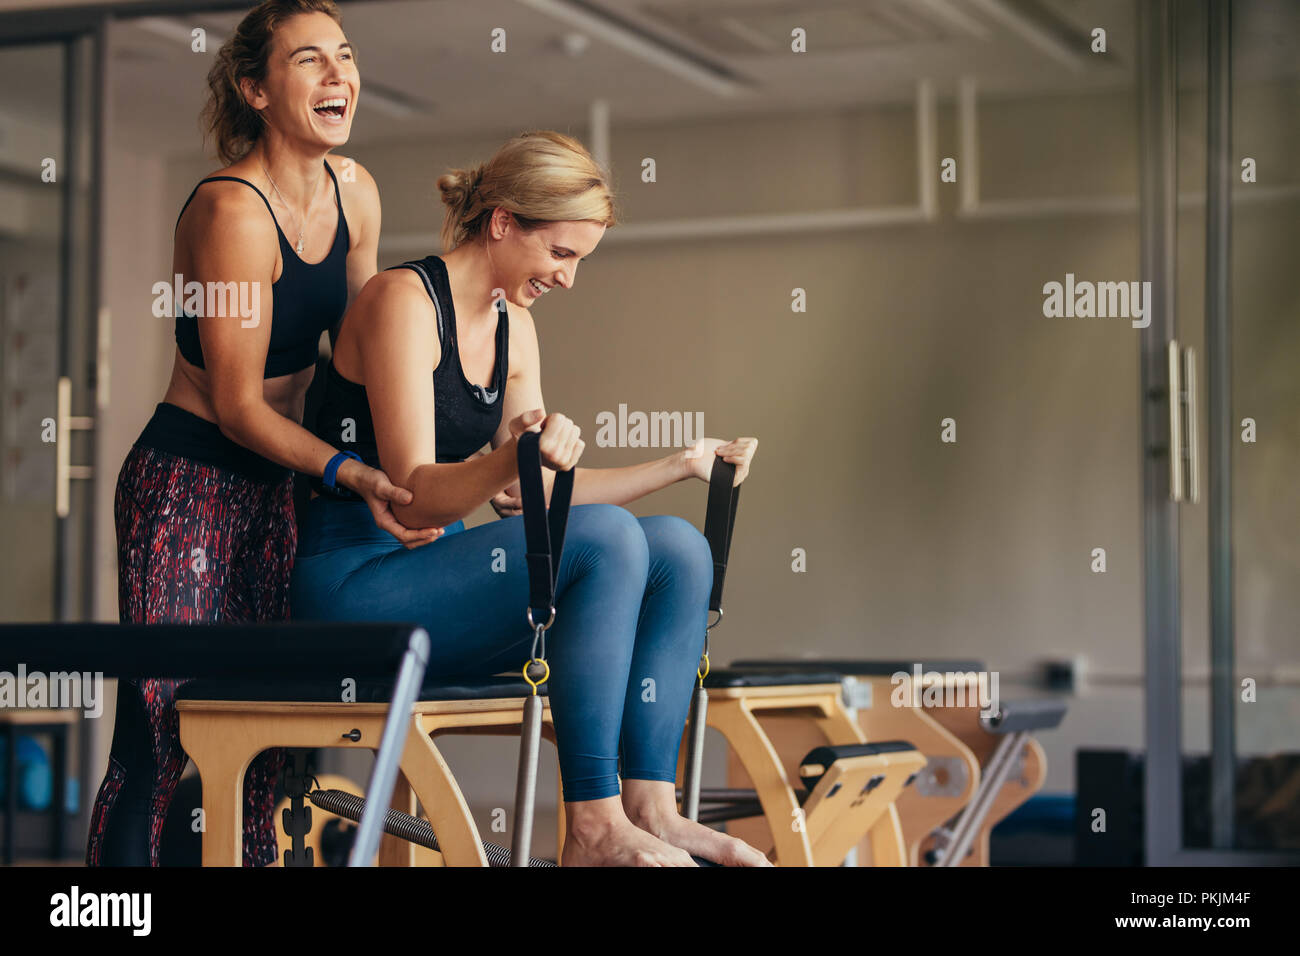 Smiling woman at the gym doing pilates training with her trainer. Trainer helping woman in pulling the stretch bands while doing pilates workout. - Stock Image